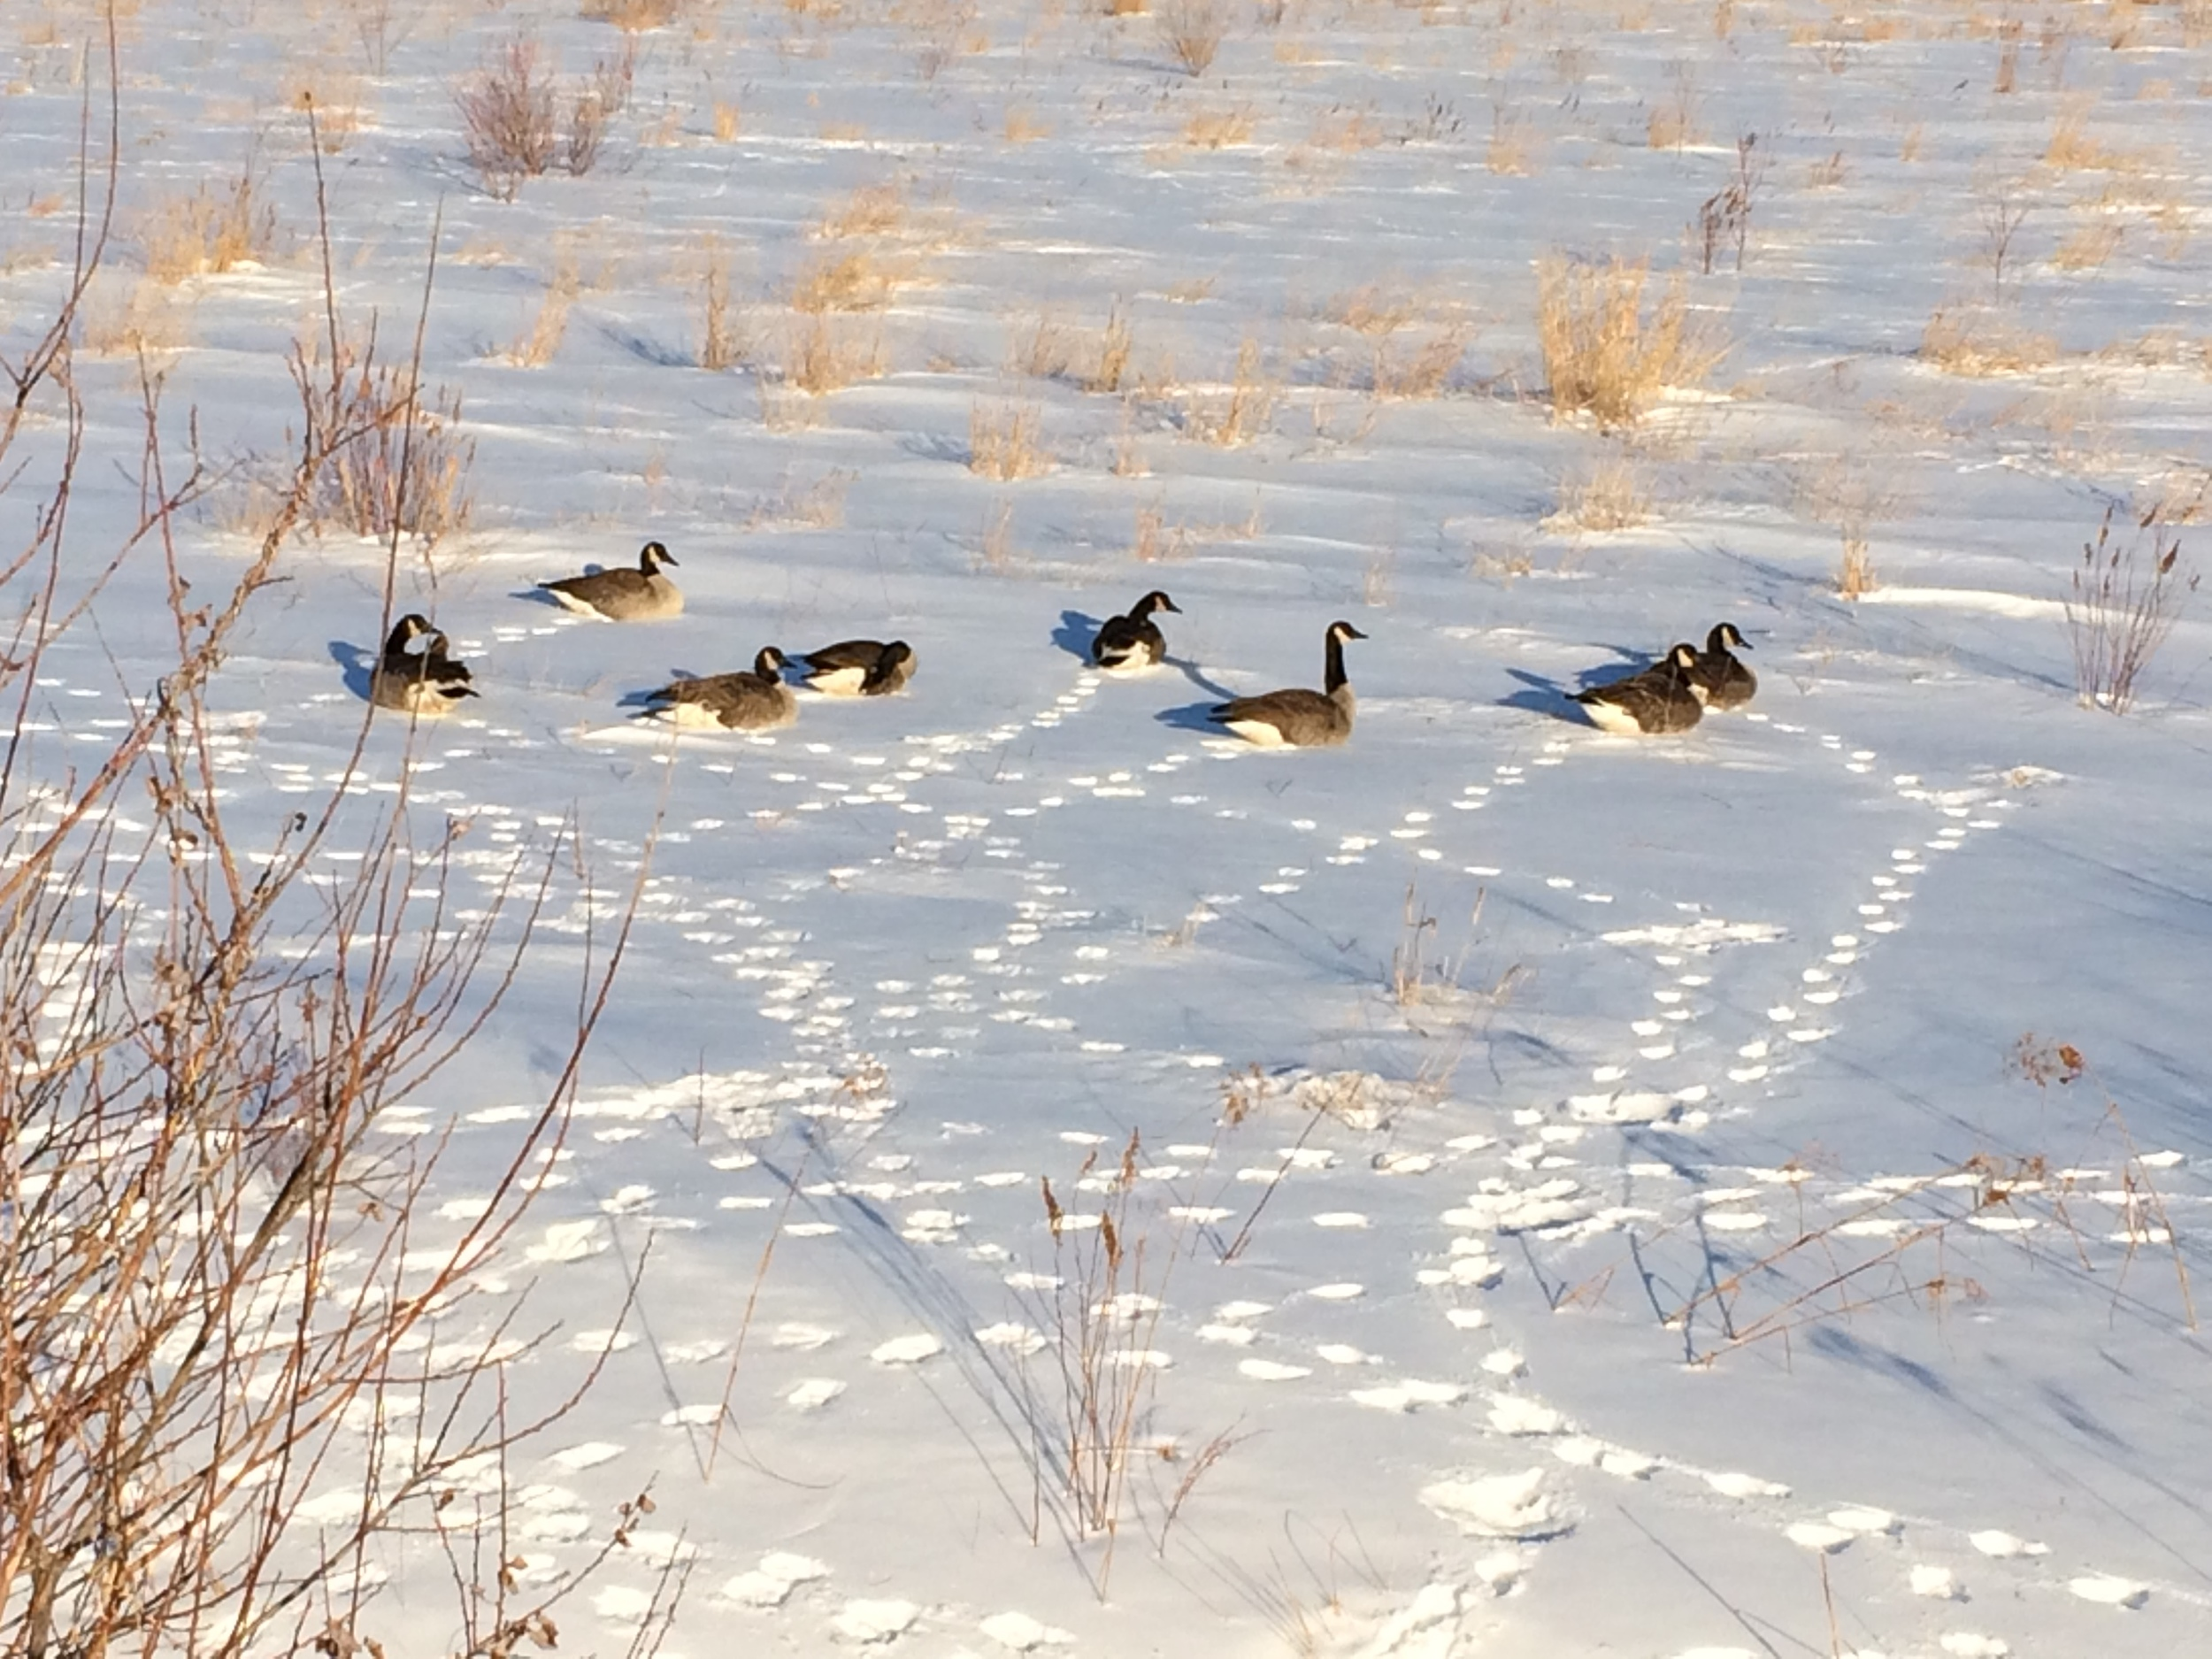 February 28, 2015 | Geese on Bogs in the Snow